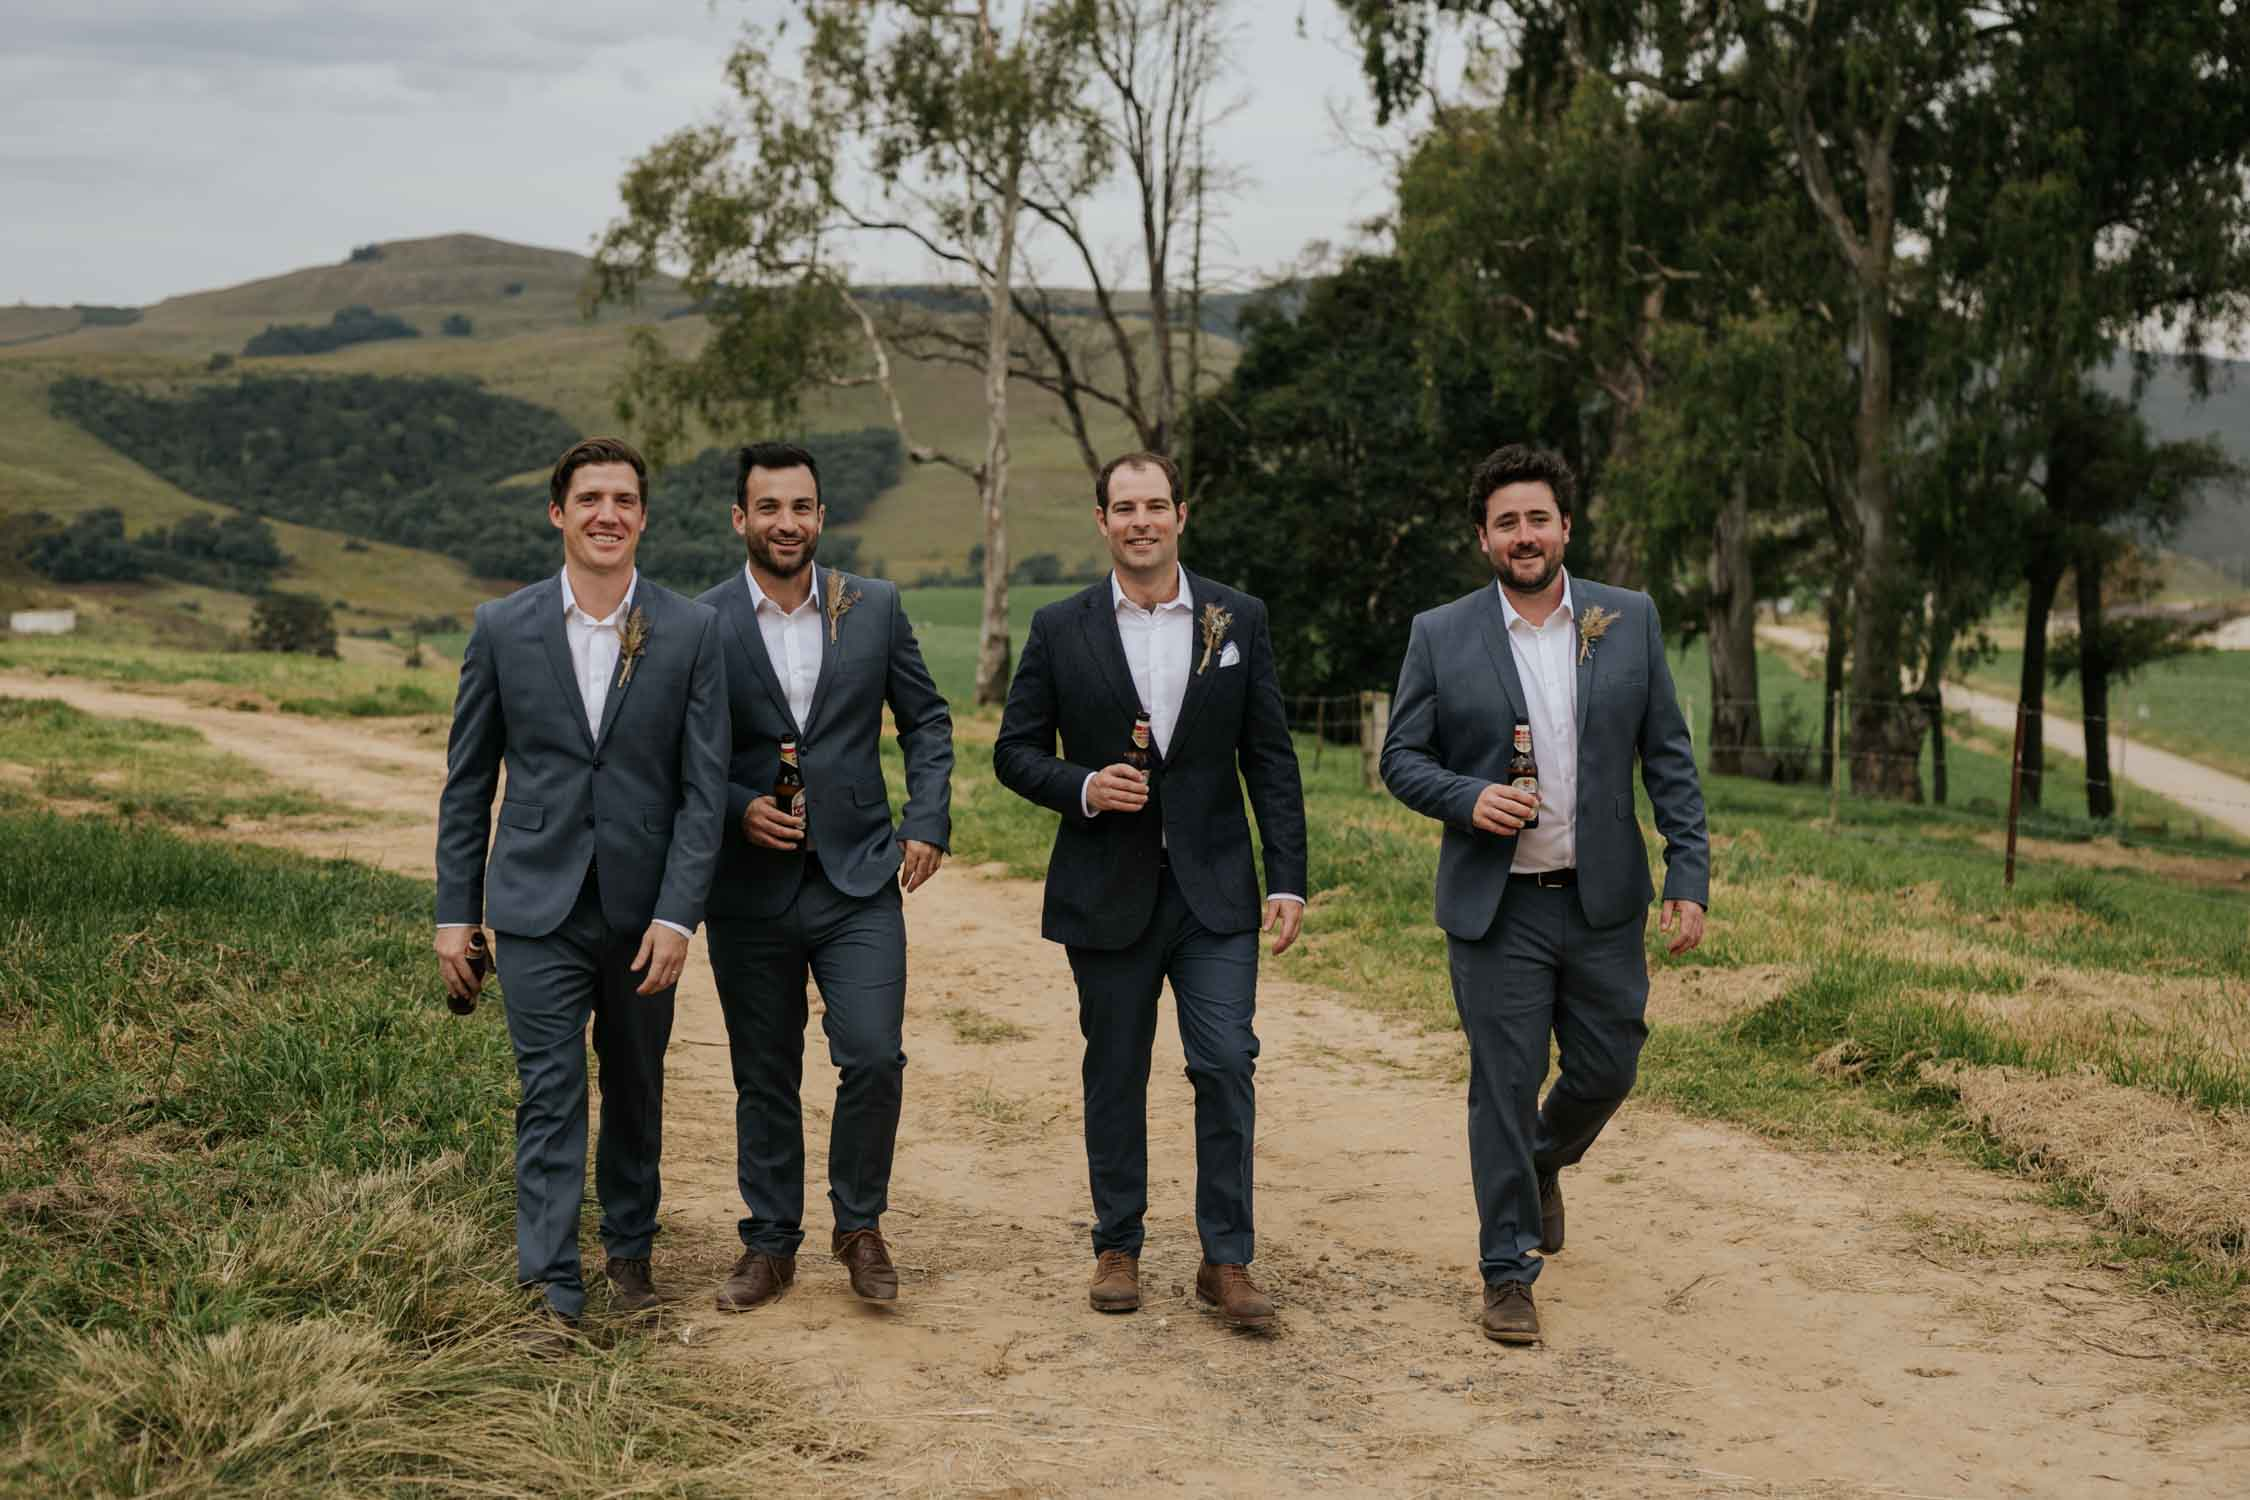 Groom and groomsman wearing grey suits walking on a farm road drinking a beer together. Candid and natural retinue photographs.